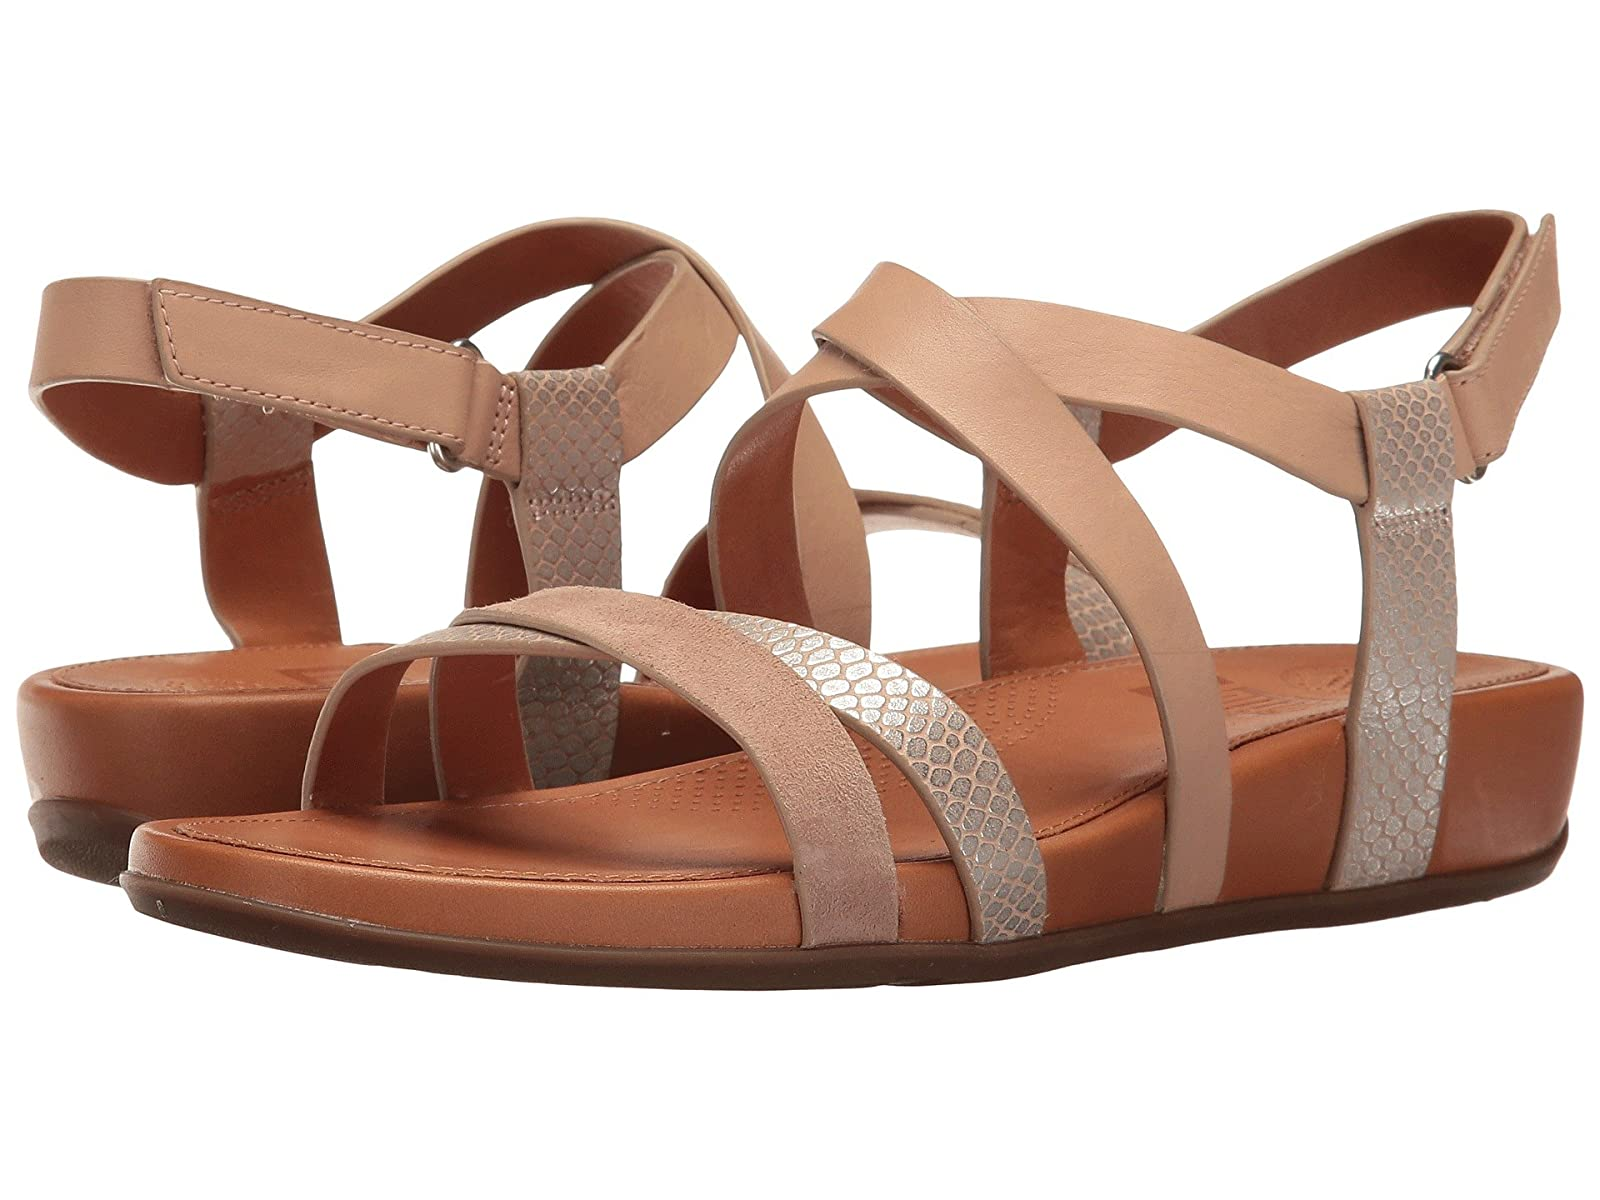 FitFlop Lumy Crisscross SandalsCheap and distinctive eye-catching shoes